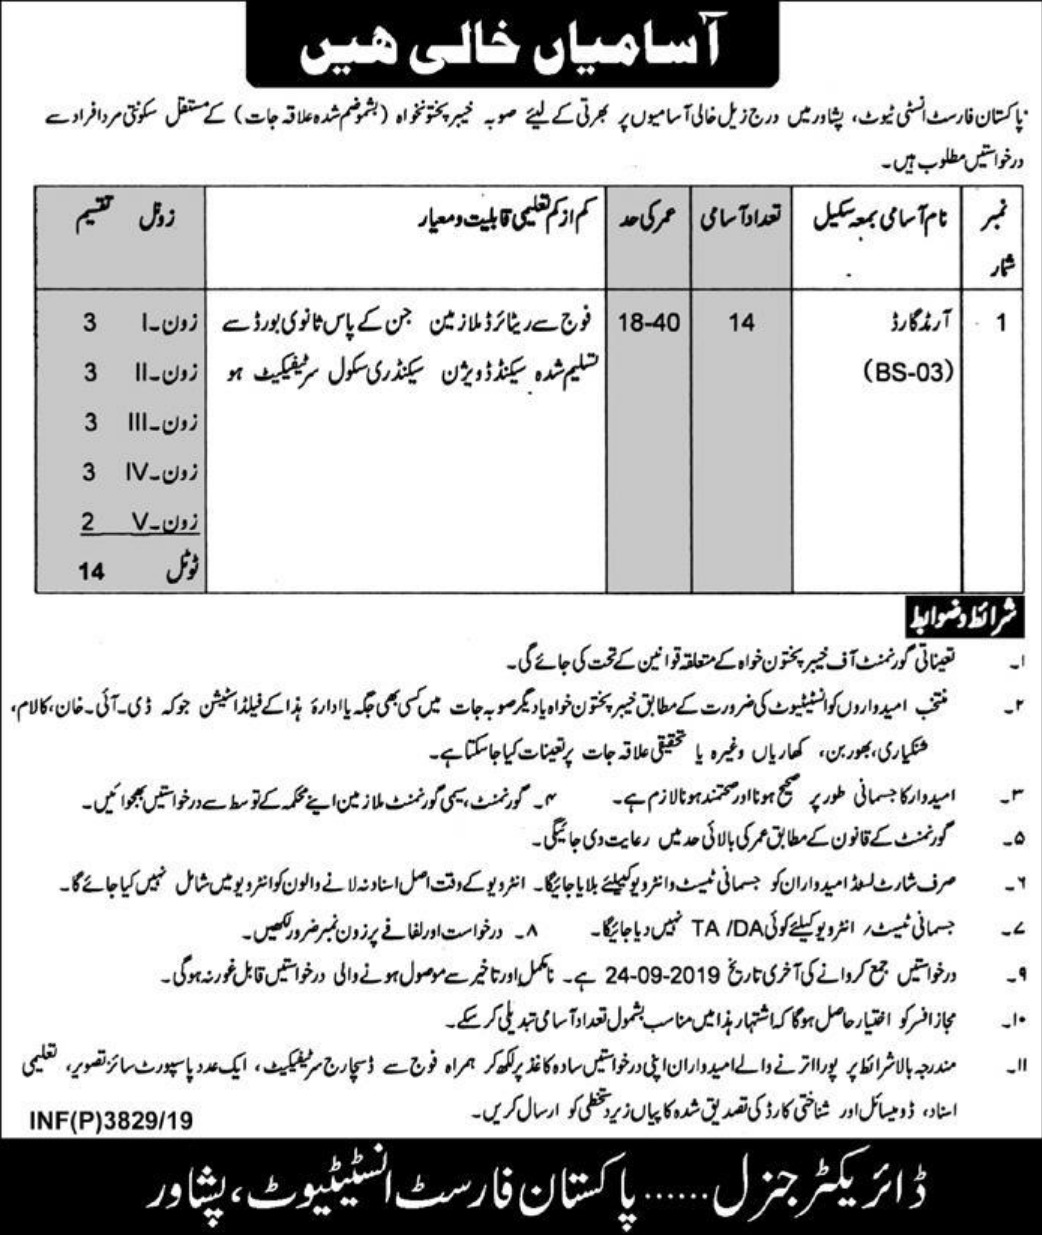 Pakistan Forest Institute Peshawar Jobs 2019